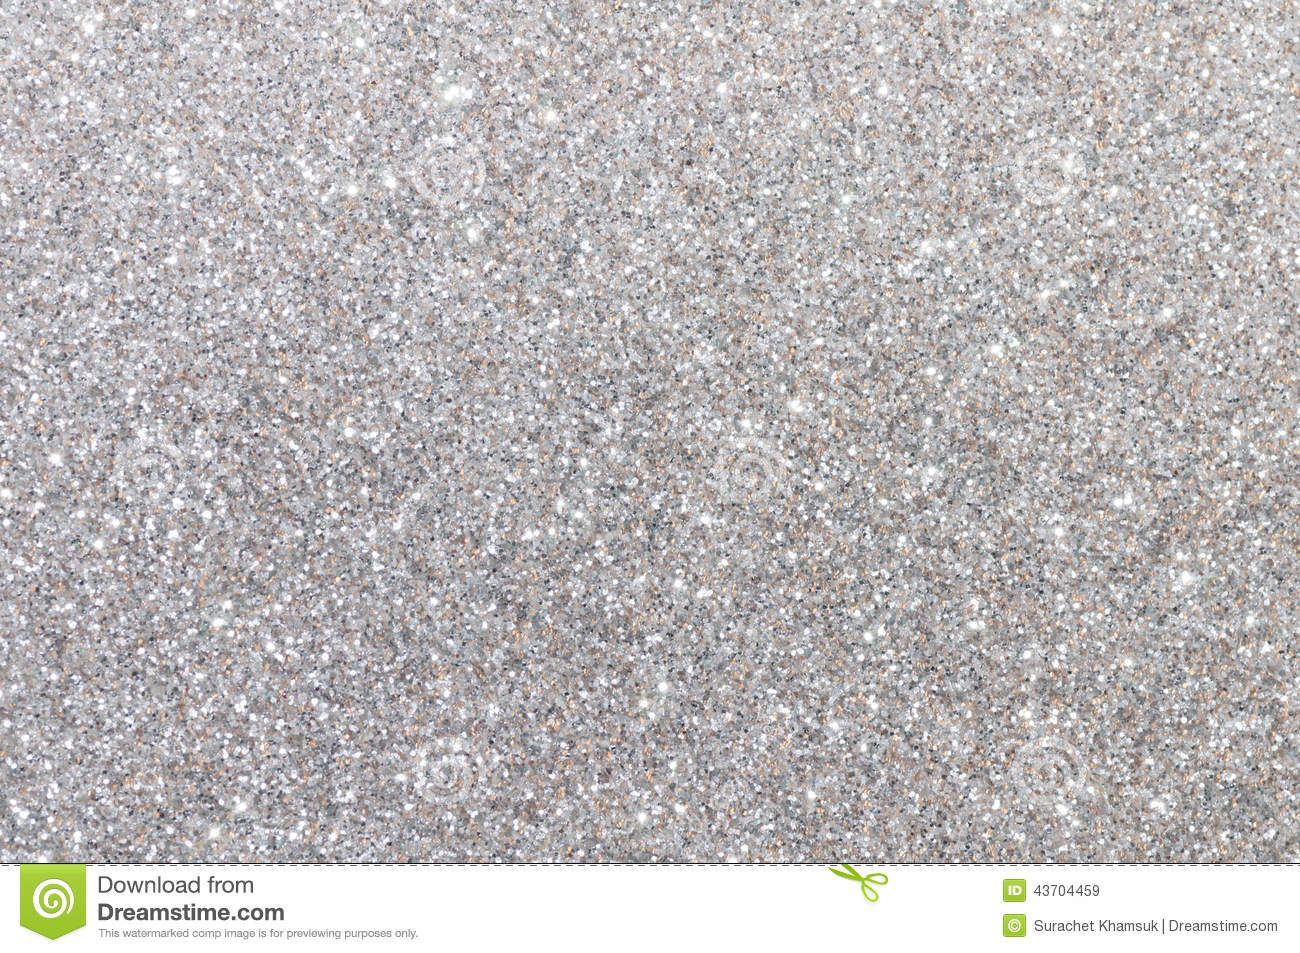 Silver Glitter Texture Background Stock Photo - Image: 43704459